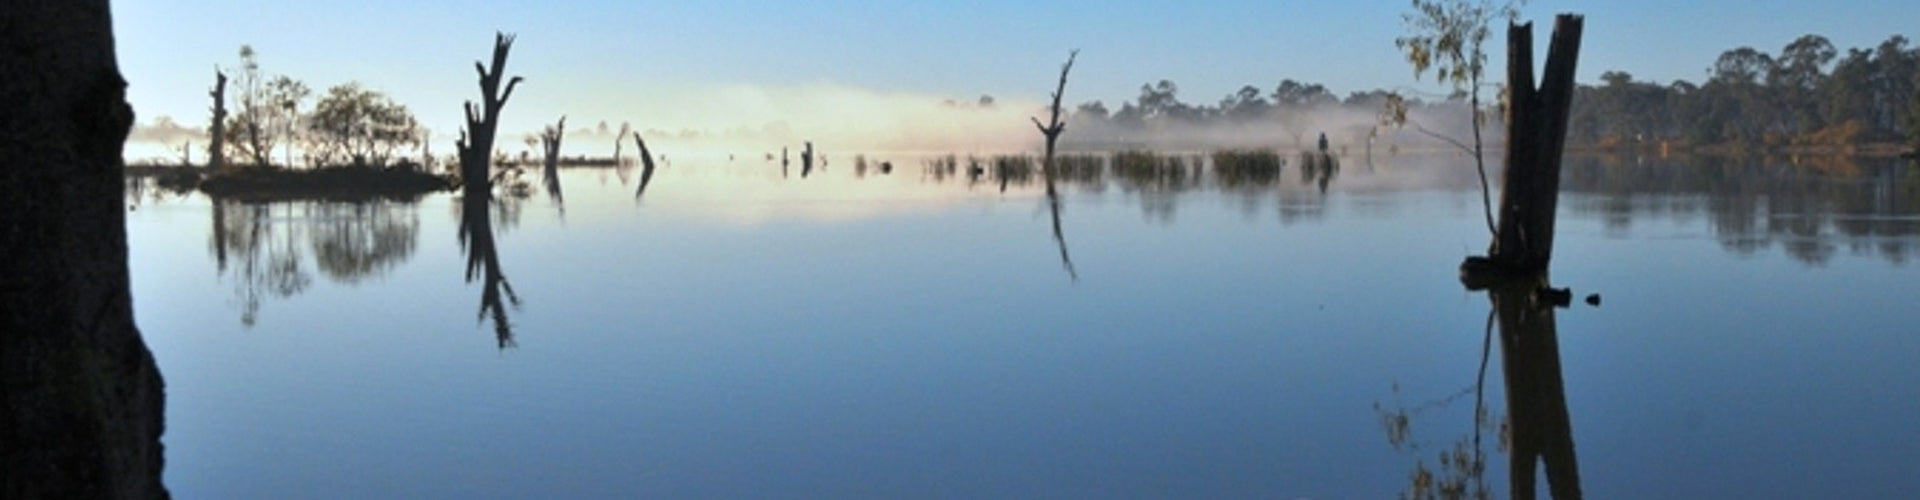 Nagambie Lakes in the Goulburn Valley Wine Region of Victoria